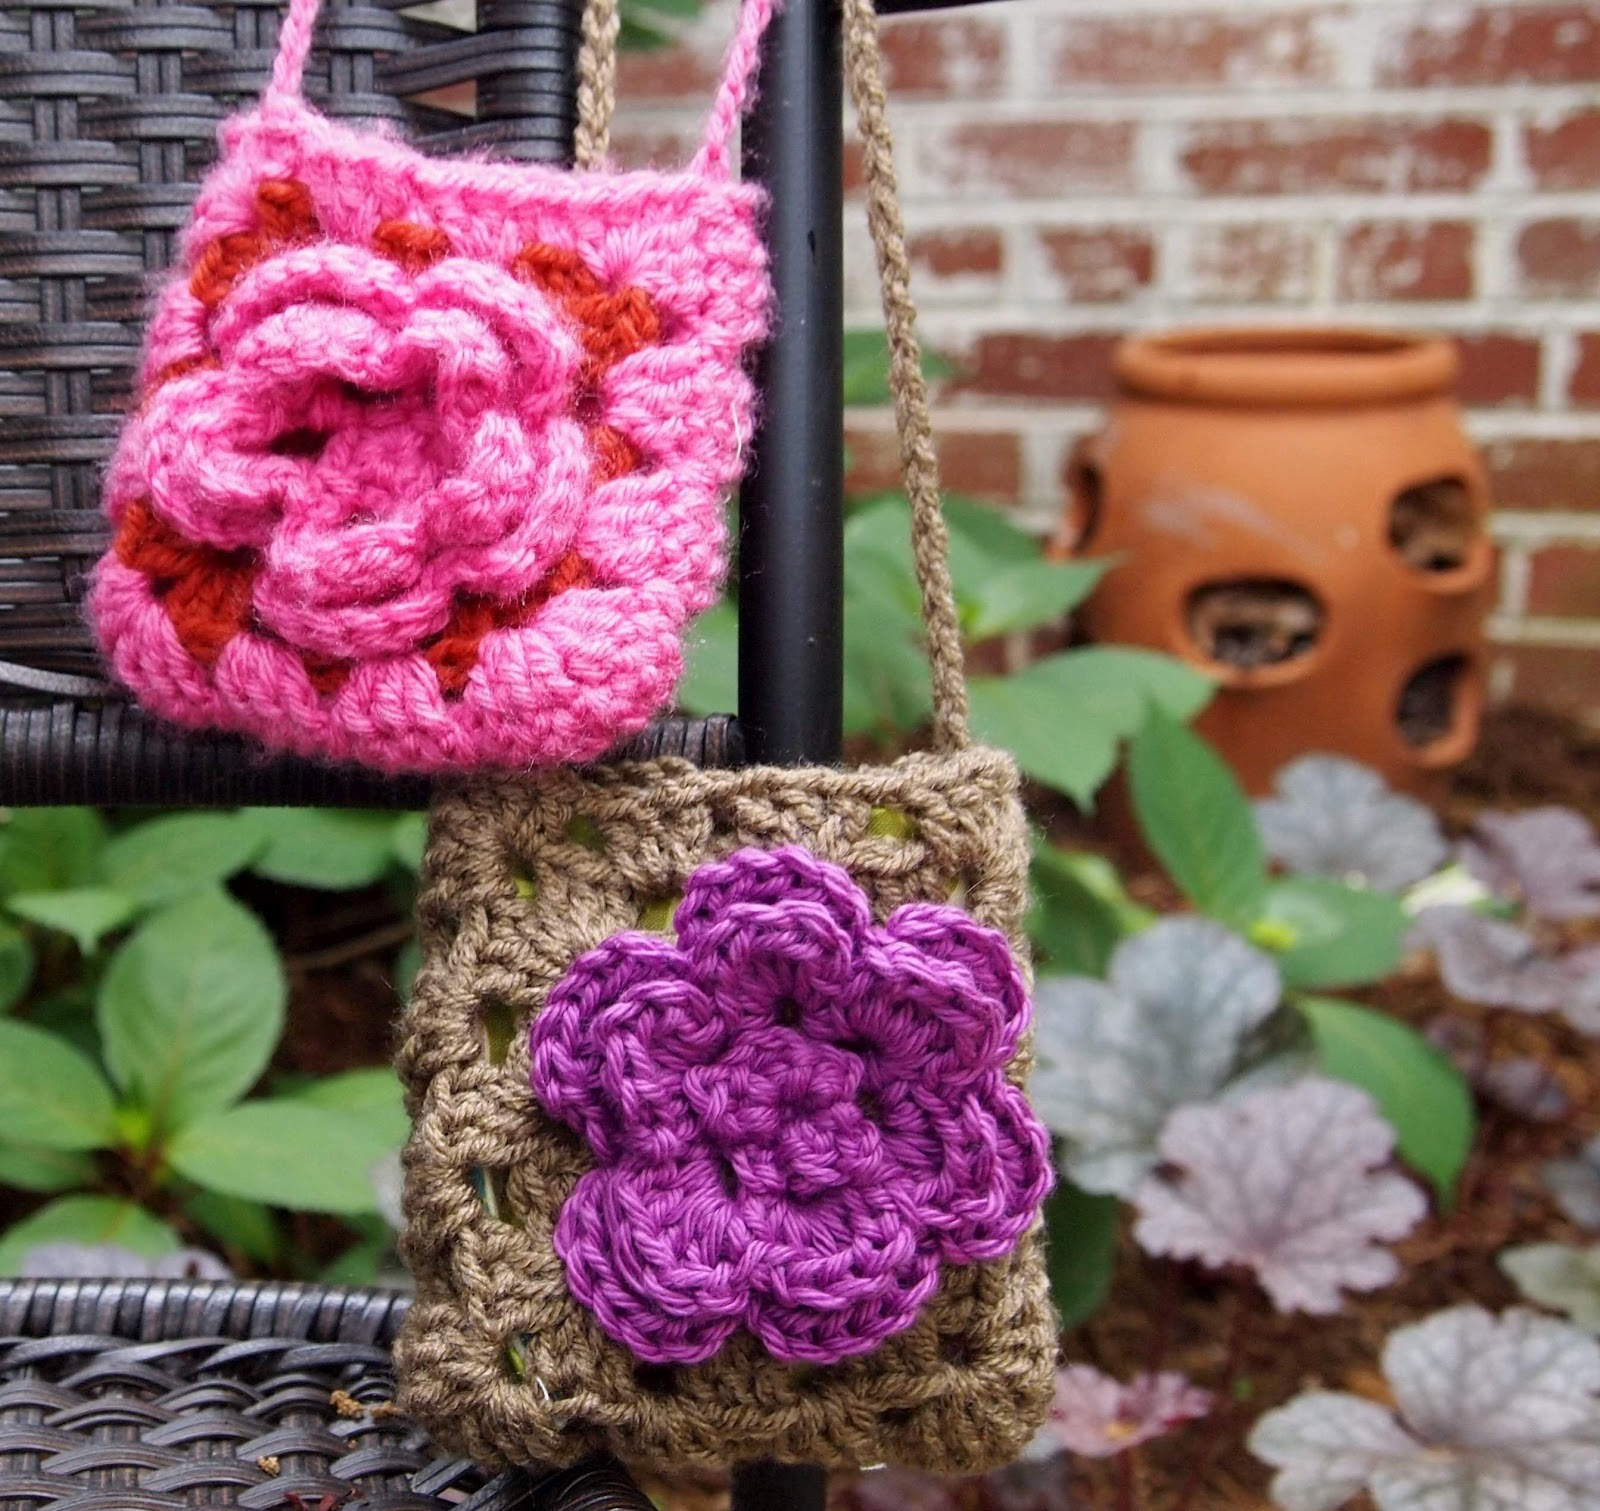 Crochet Little Bag : Actually, I made this little bag with the purple flower over the ...